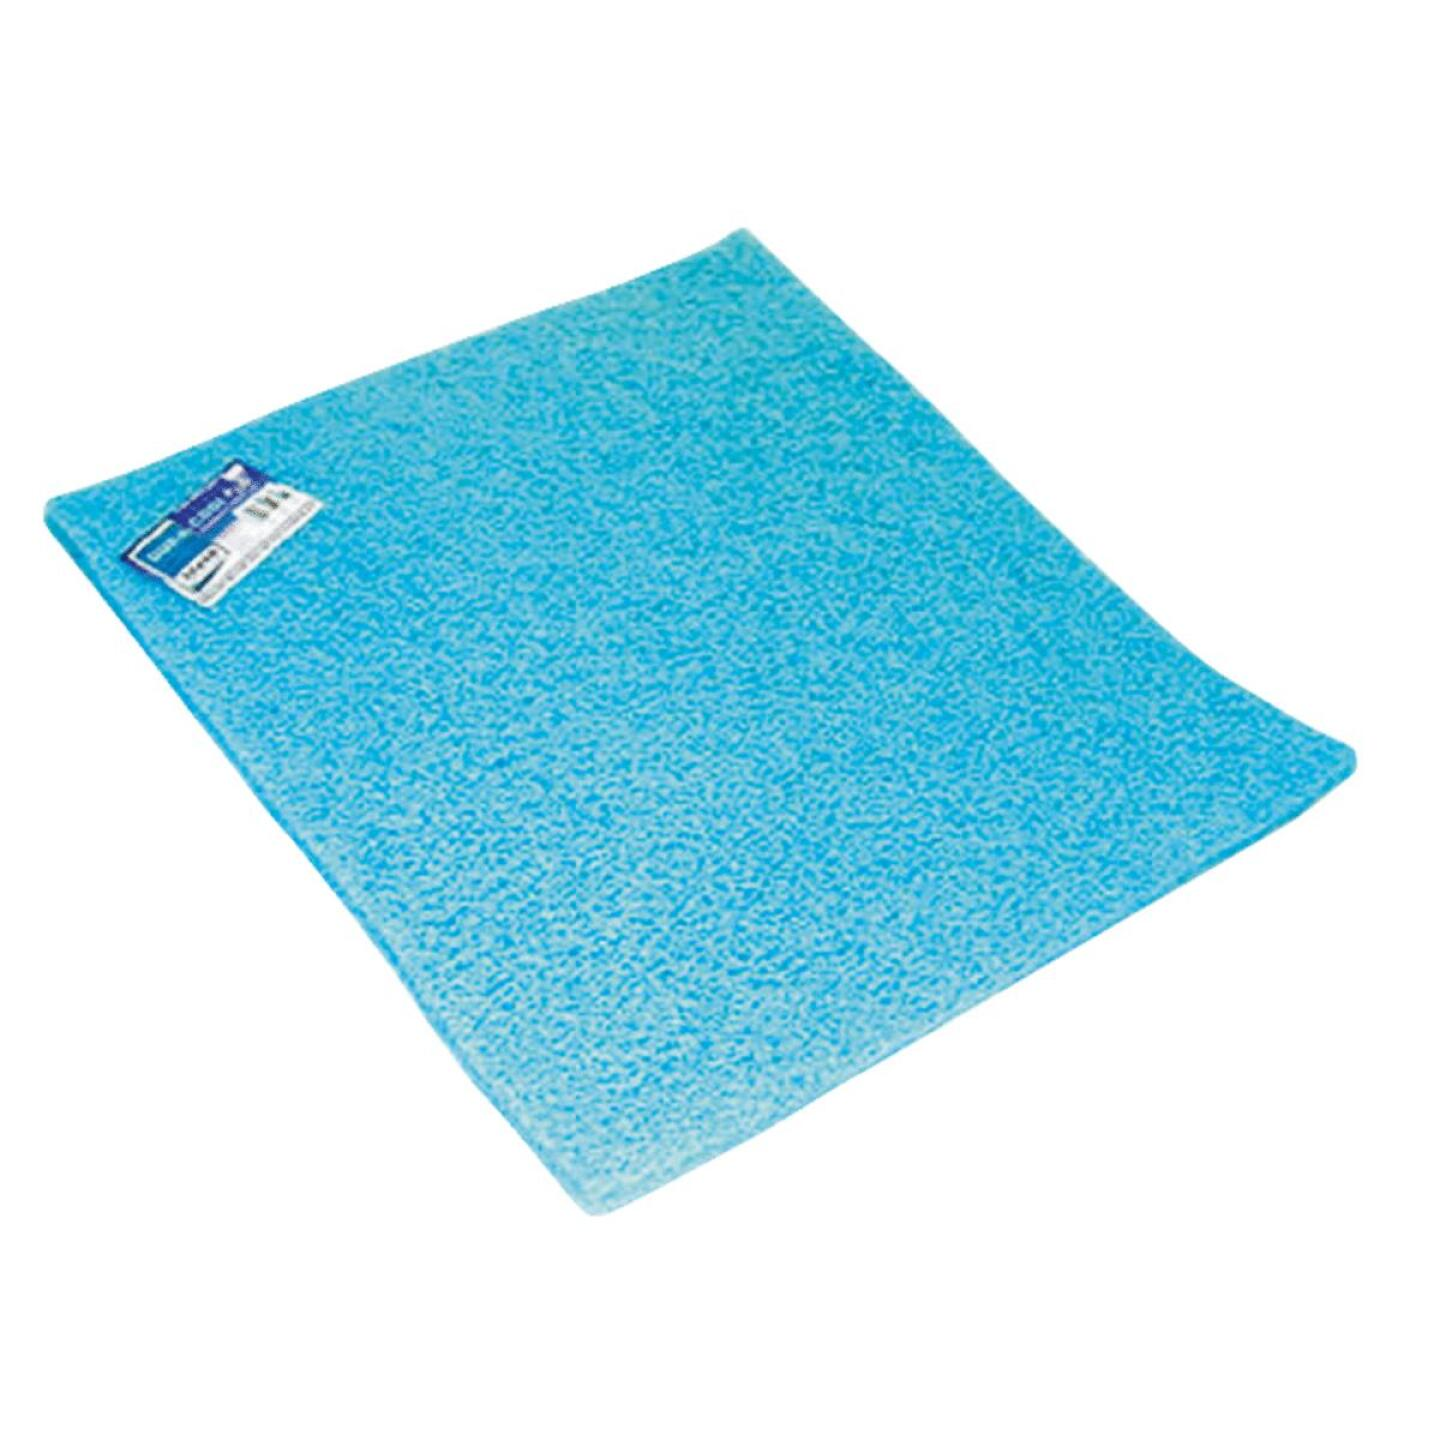 Dial Dura-Cool 28 In. x 34 In. Foamed Polyester Evaporative Cooler Pad Image 1